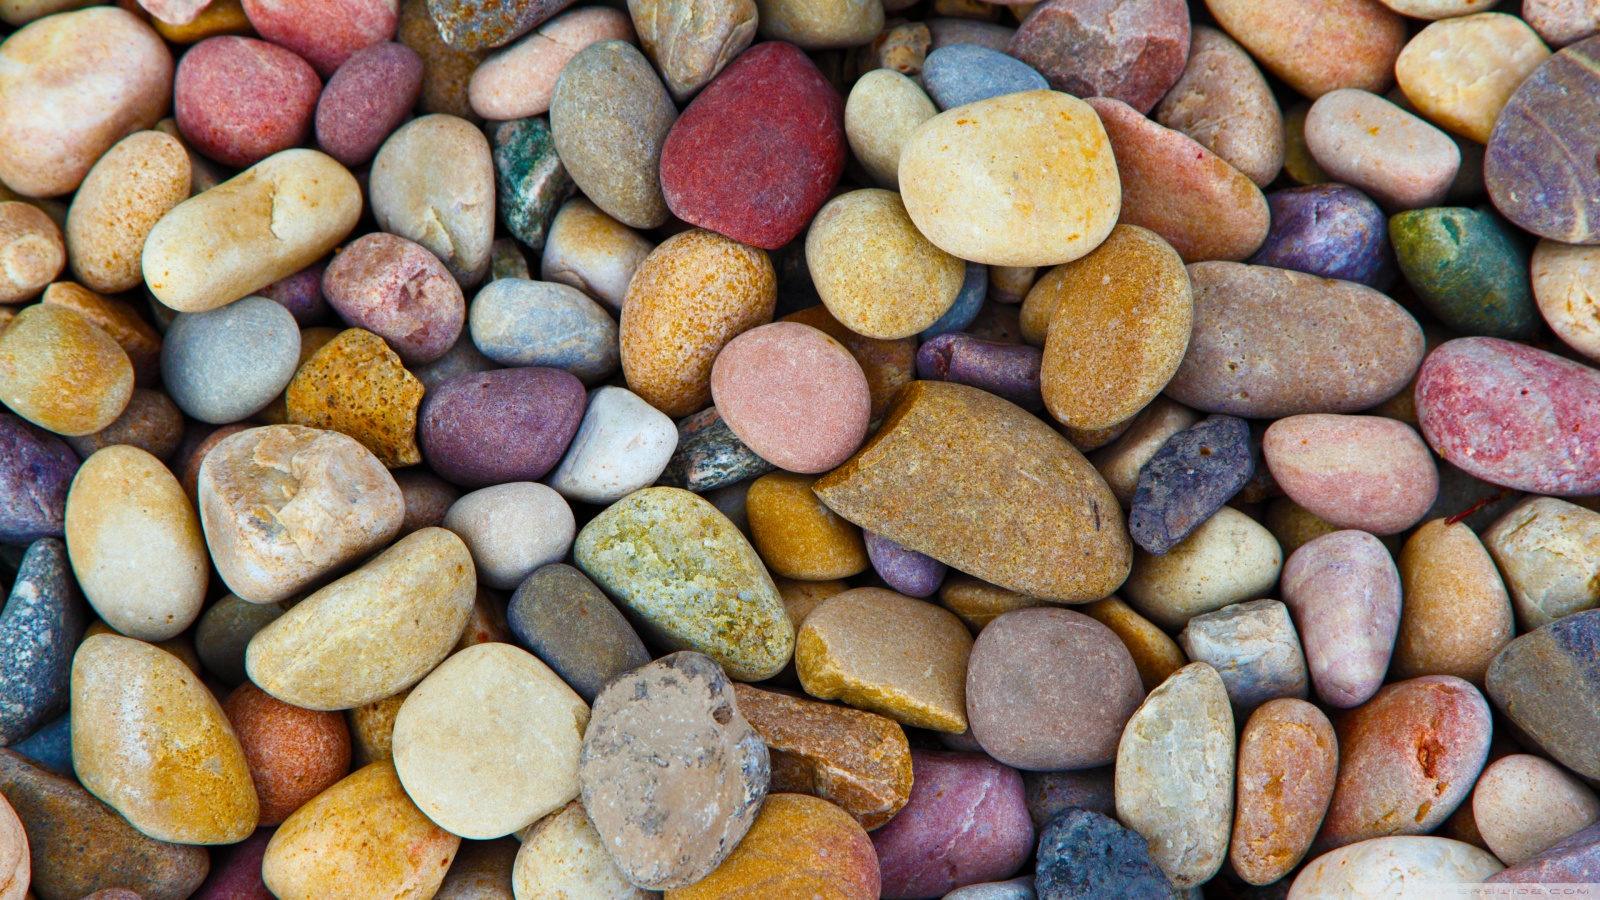 Colorful Pebbles Wallpaper